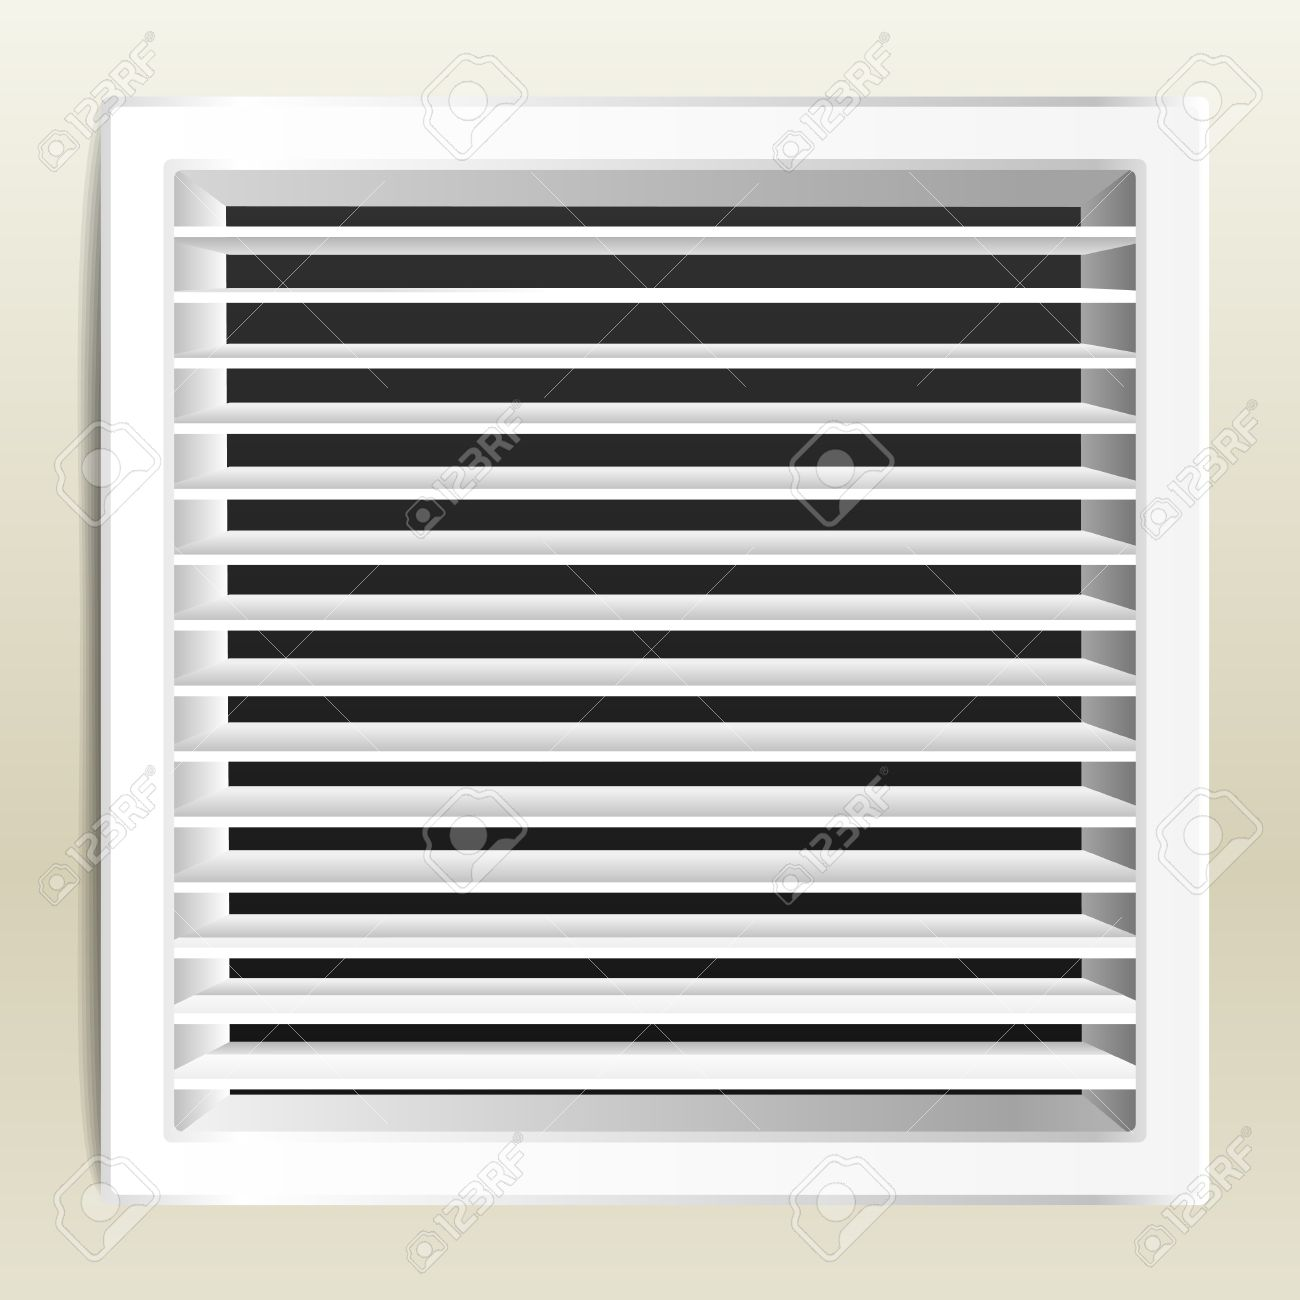 Photo Realistic Bathroom Ventilation Window. Royalty Free Cliparts.